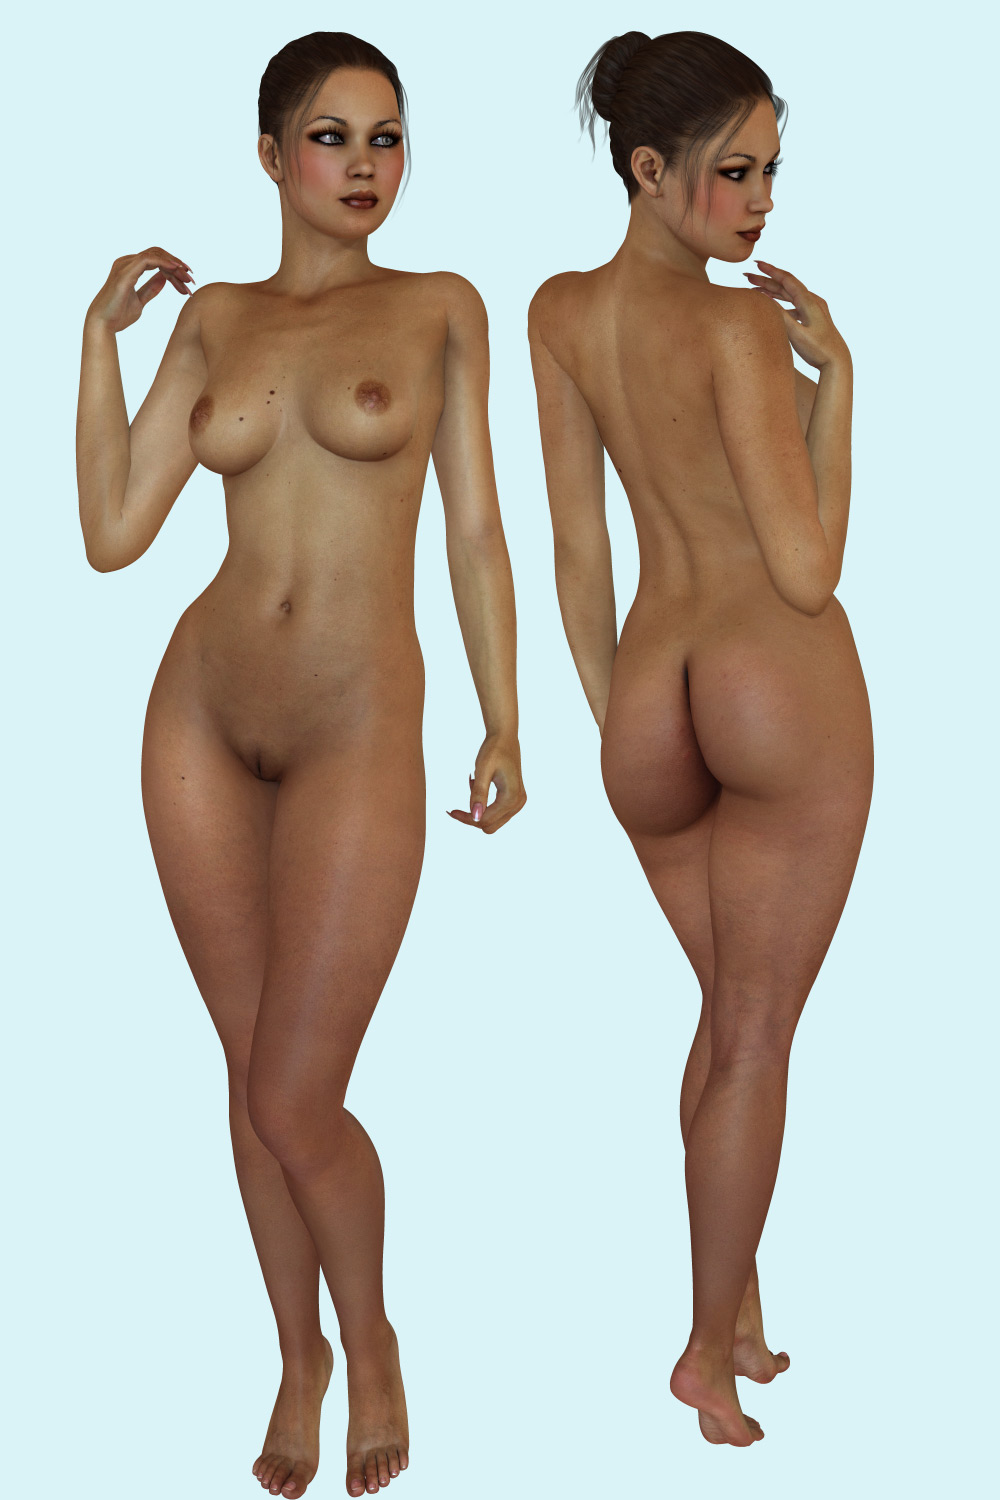 Daz 3d female models nude nackt pictures